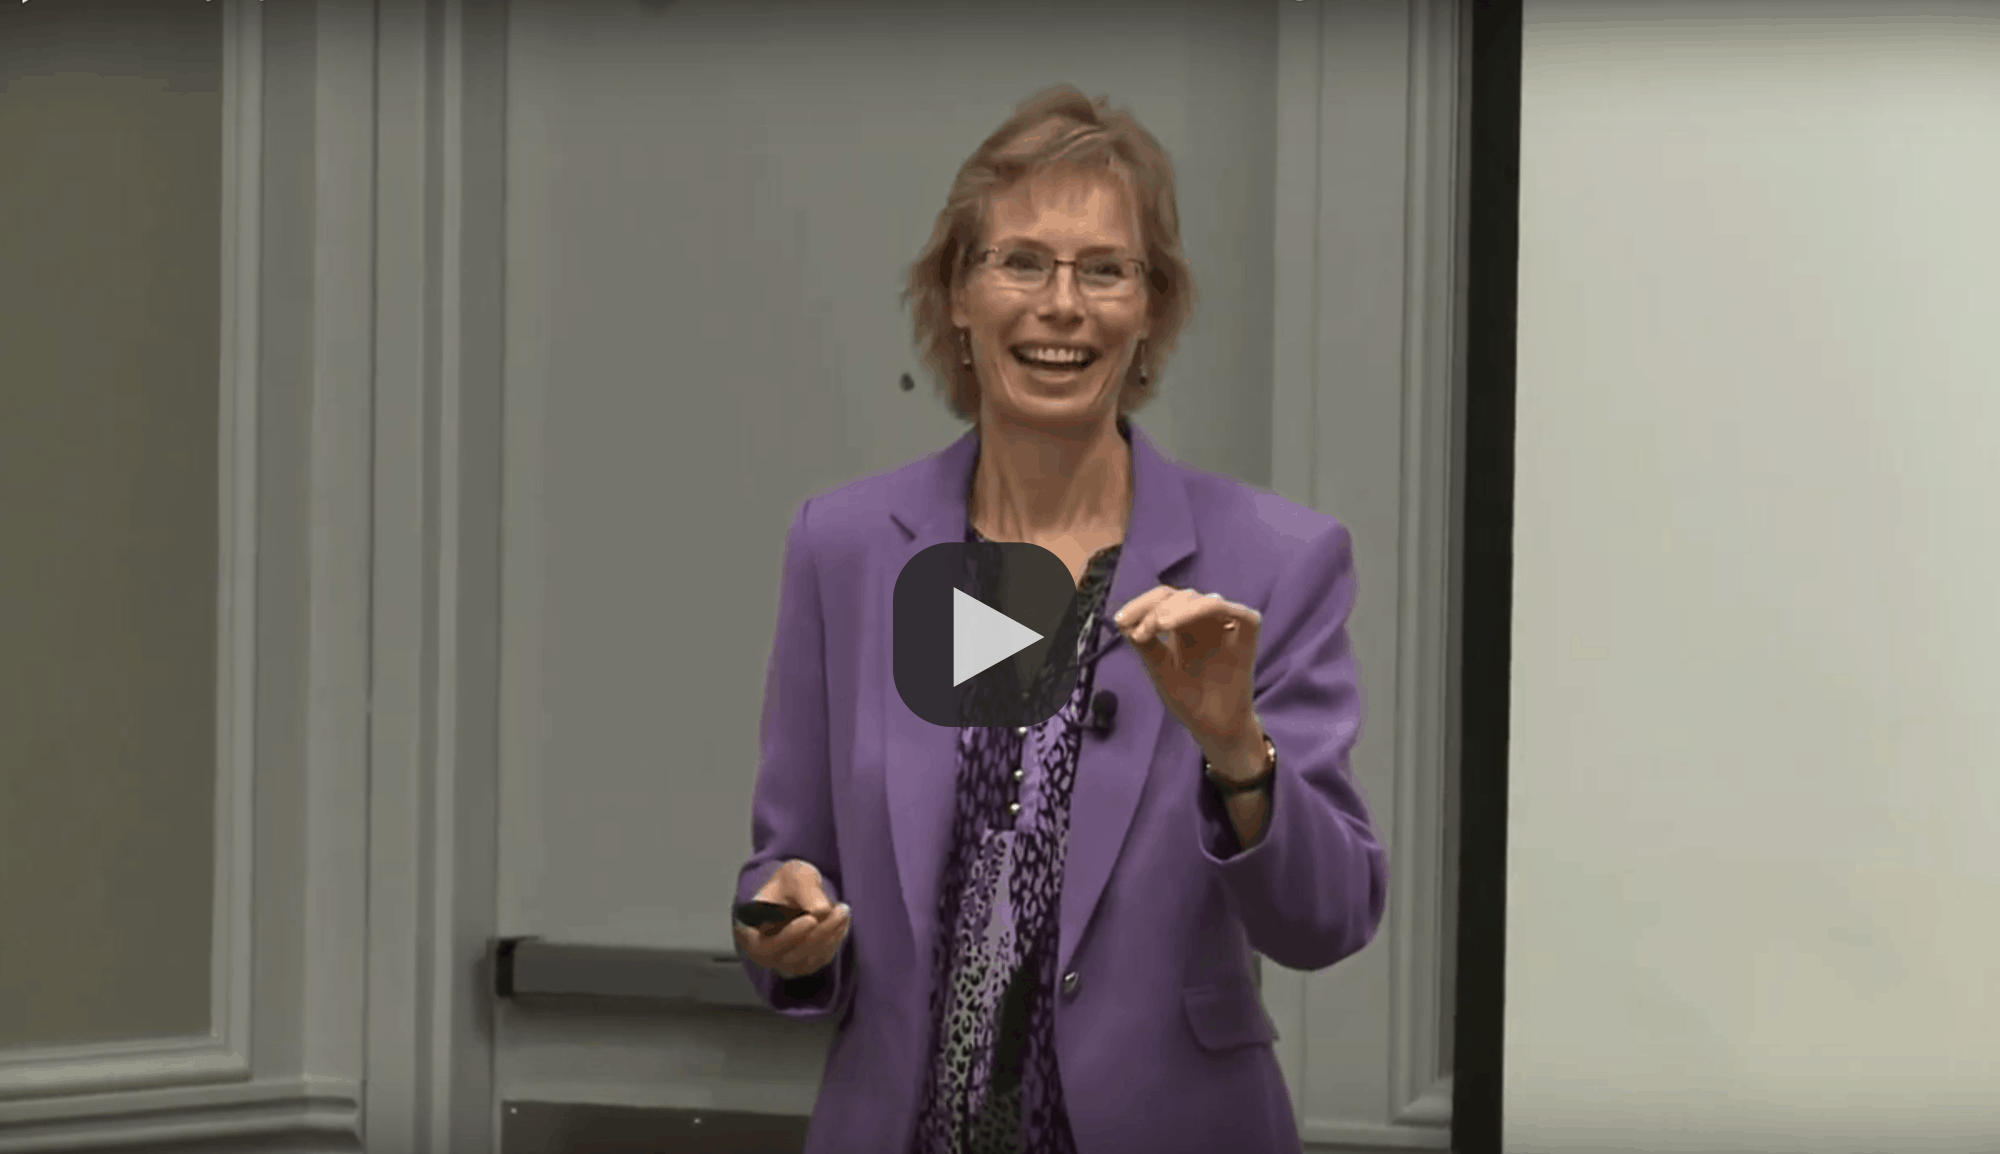 Tina Hallis speaking highlights about shifting your thinking